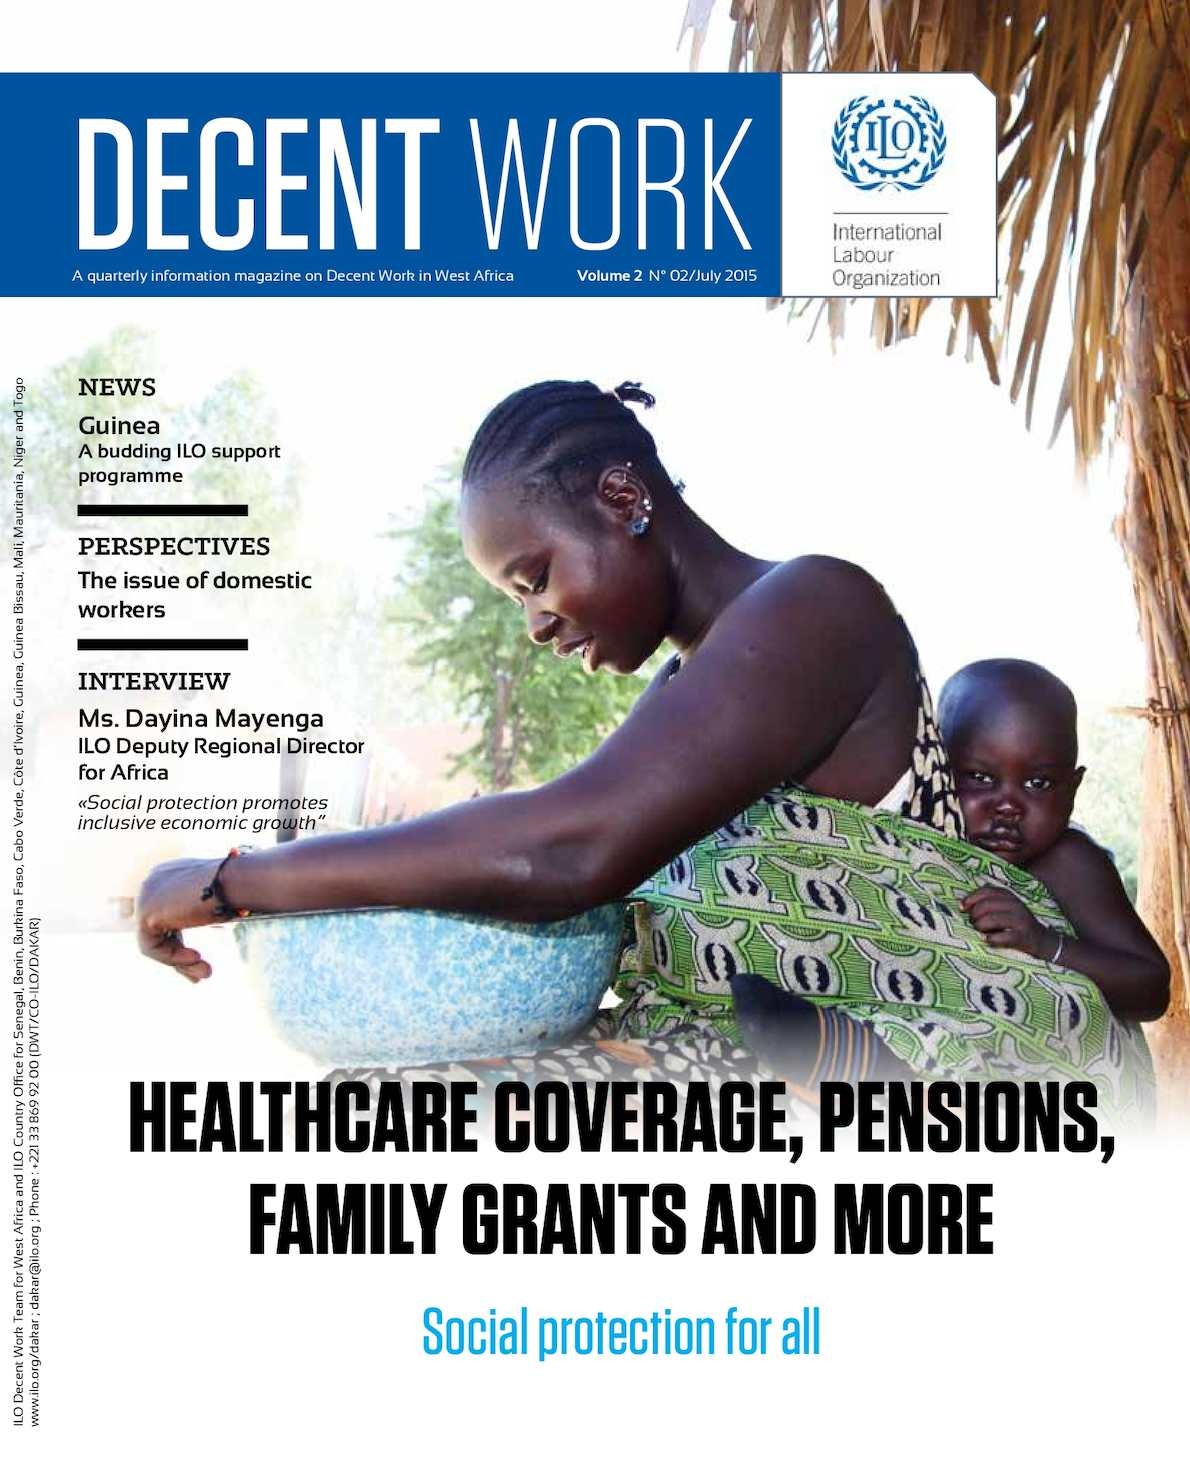 Calaméo - Decent Work: information magazine on labour in